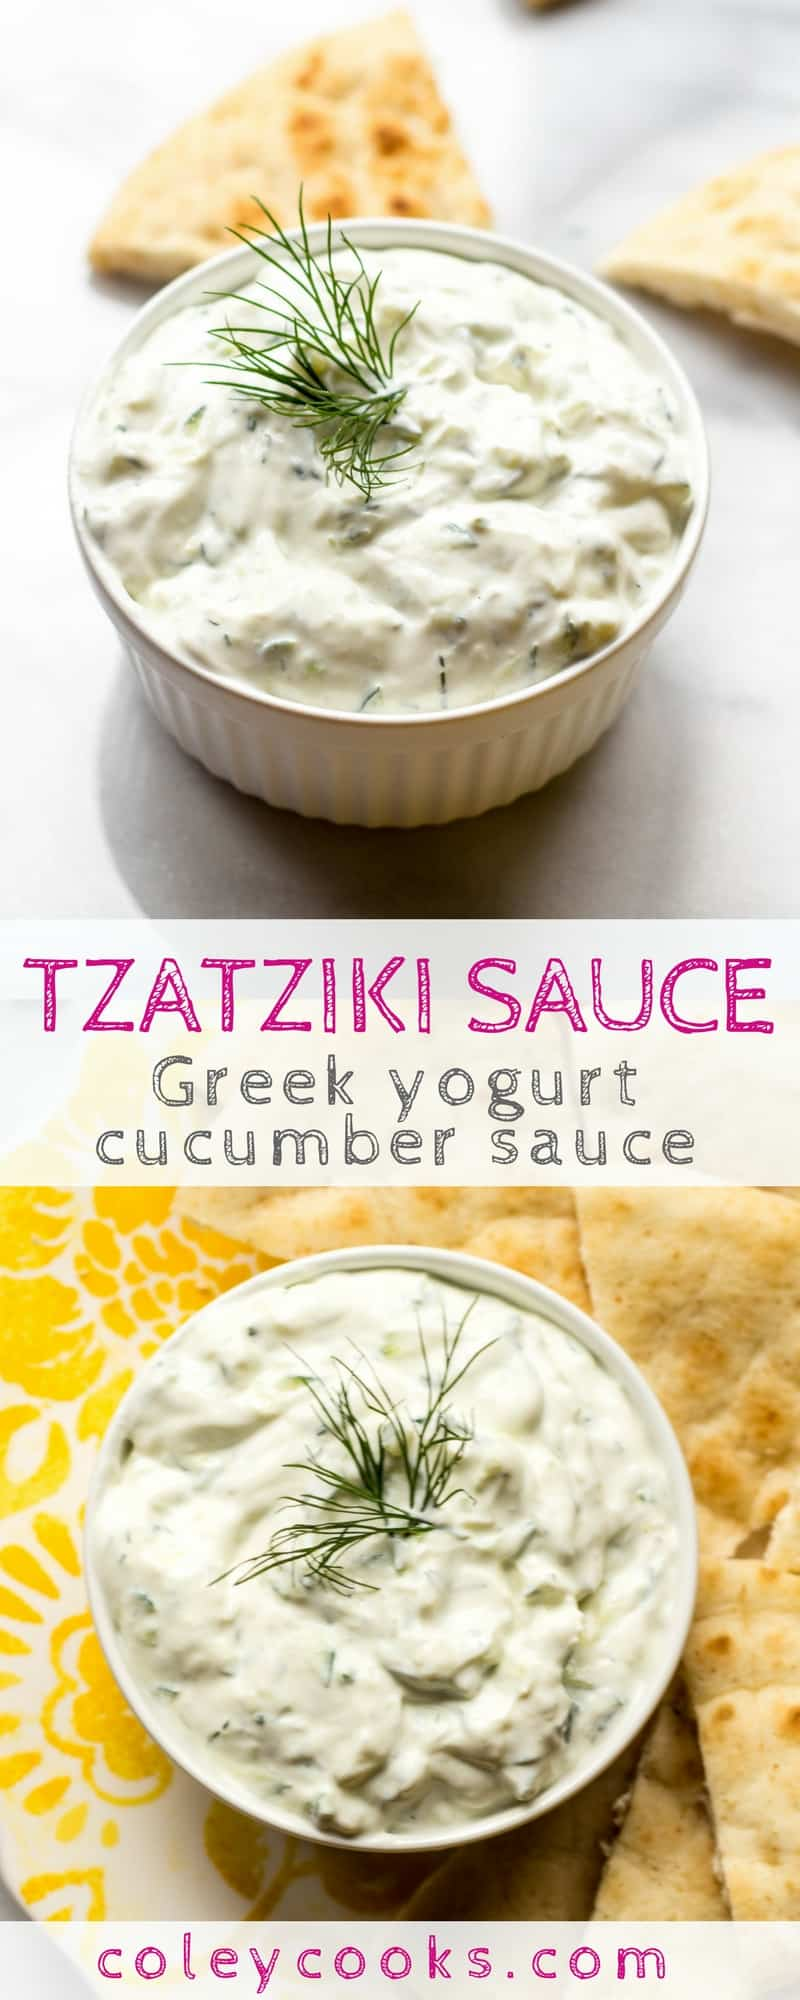 TZATZIKI SAUCE | Easy recipe for Greek yogurt cucumber sauce Tzatziki! Creamy, refreshing, and wonderful with pita, on gyros, souvlaki, falafel, or your favorite Greek recipe! #glutenfree #vegetarian | ColeyCooks.com